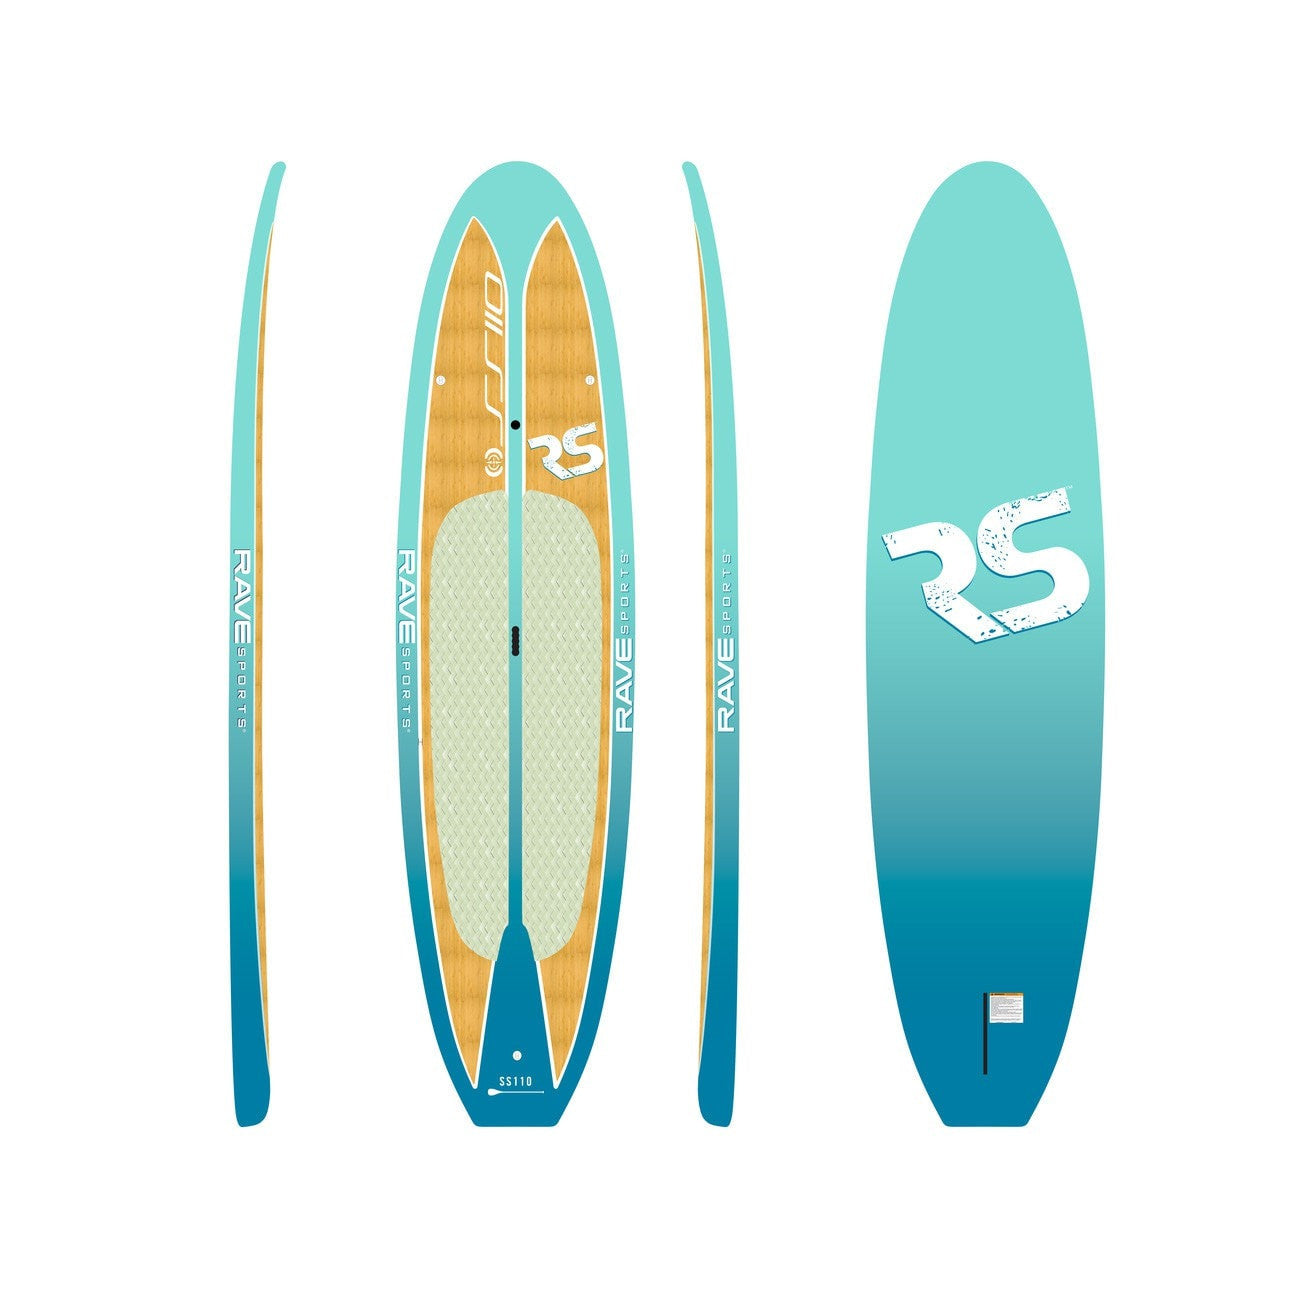 Rave Sports Shoreline Series SS110 Stand Up Paddle Board SUP - 02728 - Kayak Creek